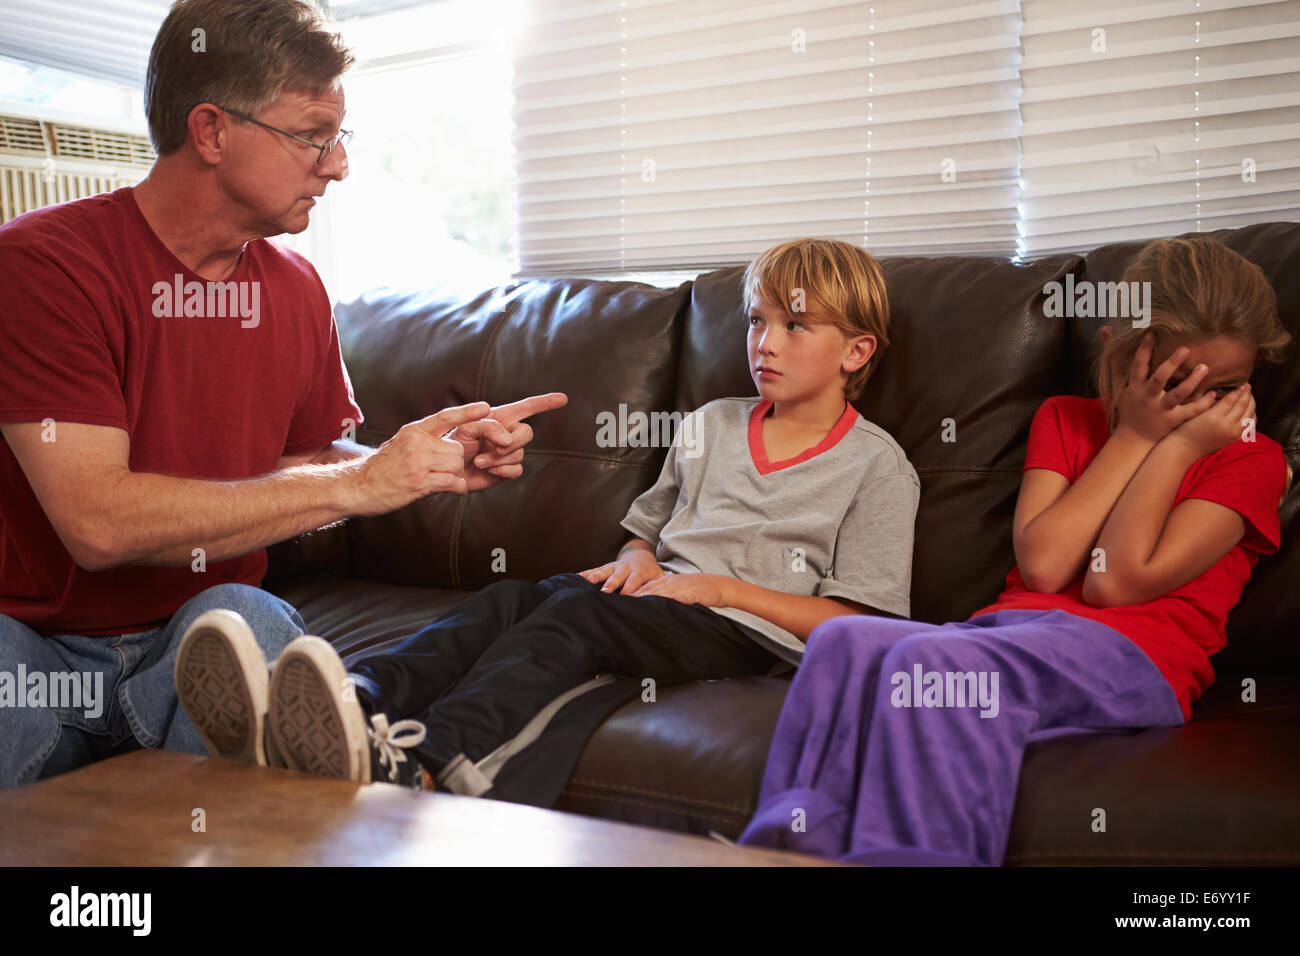 Father Being Physically Abusive Towards Children At Home - Stock Image